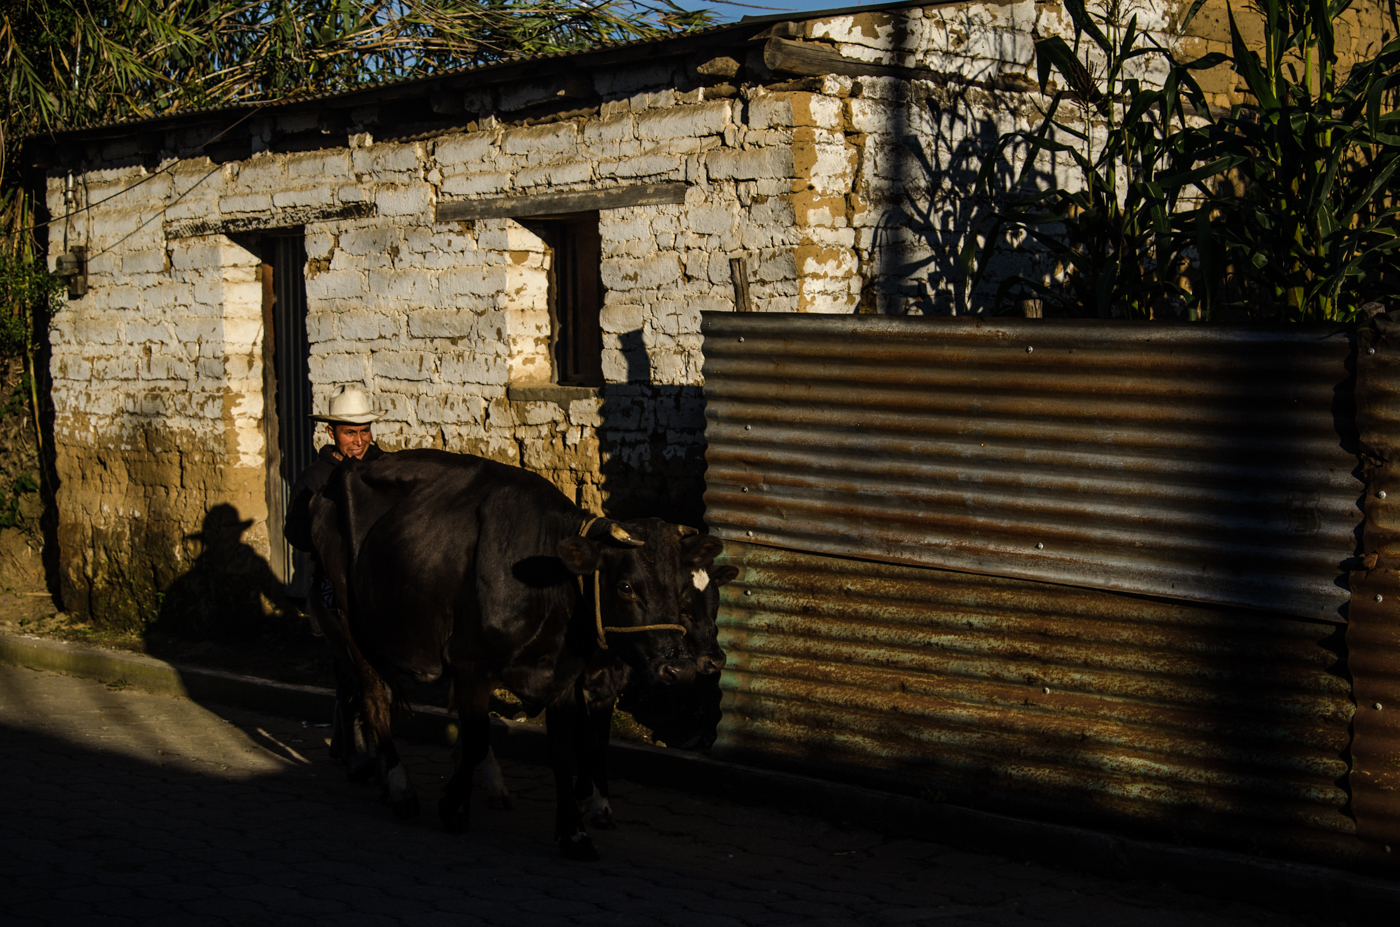 A man drives his cattle through town and into the morning sun.